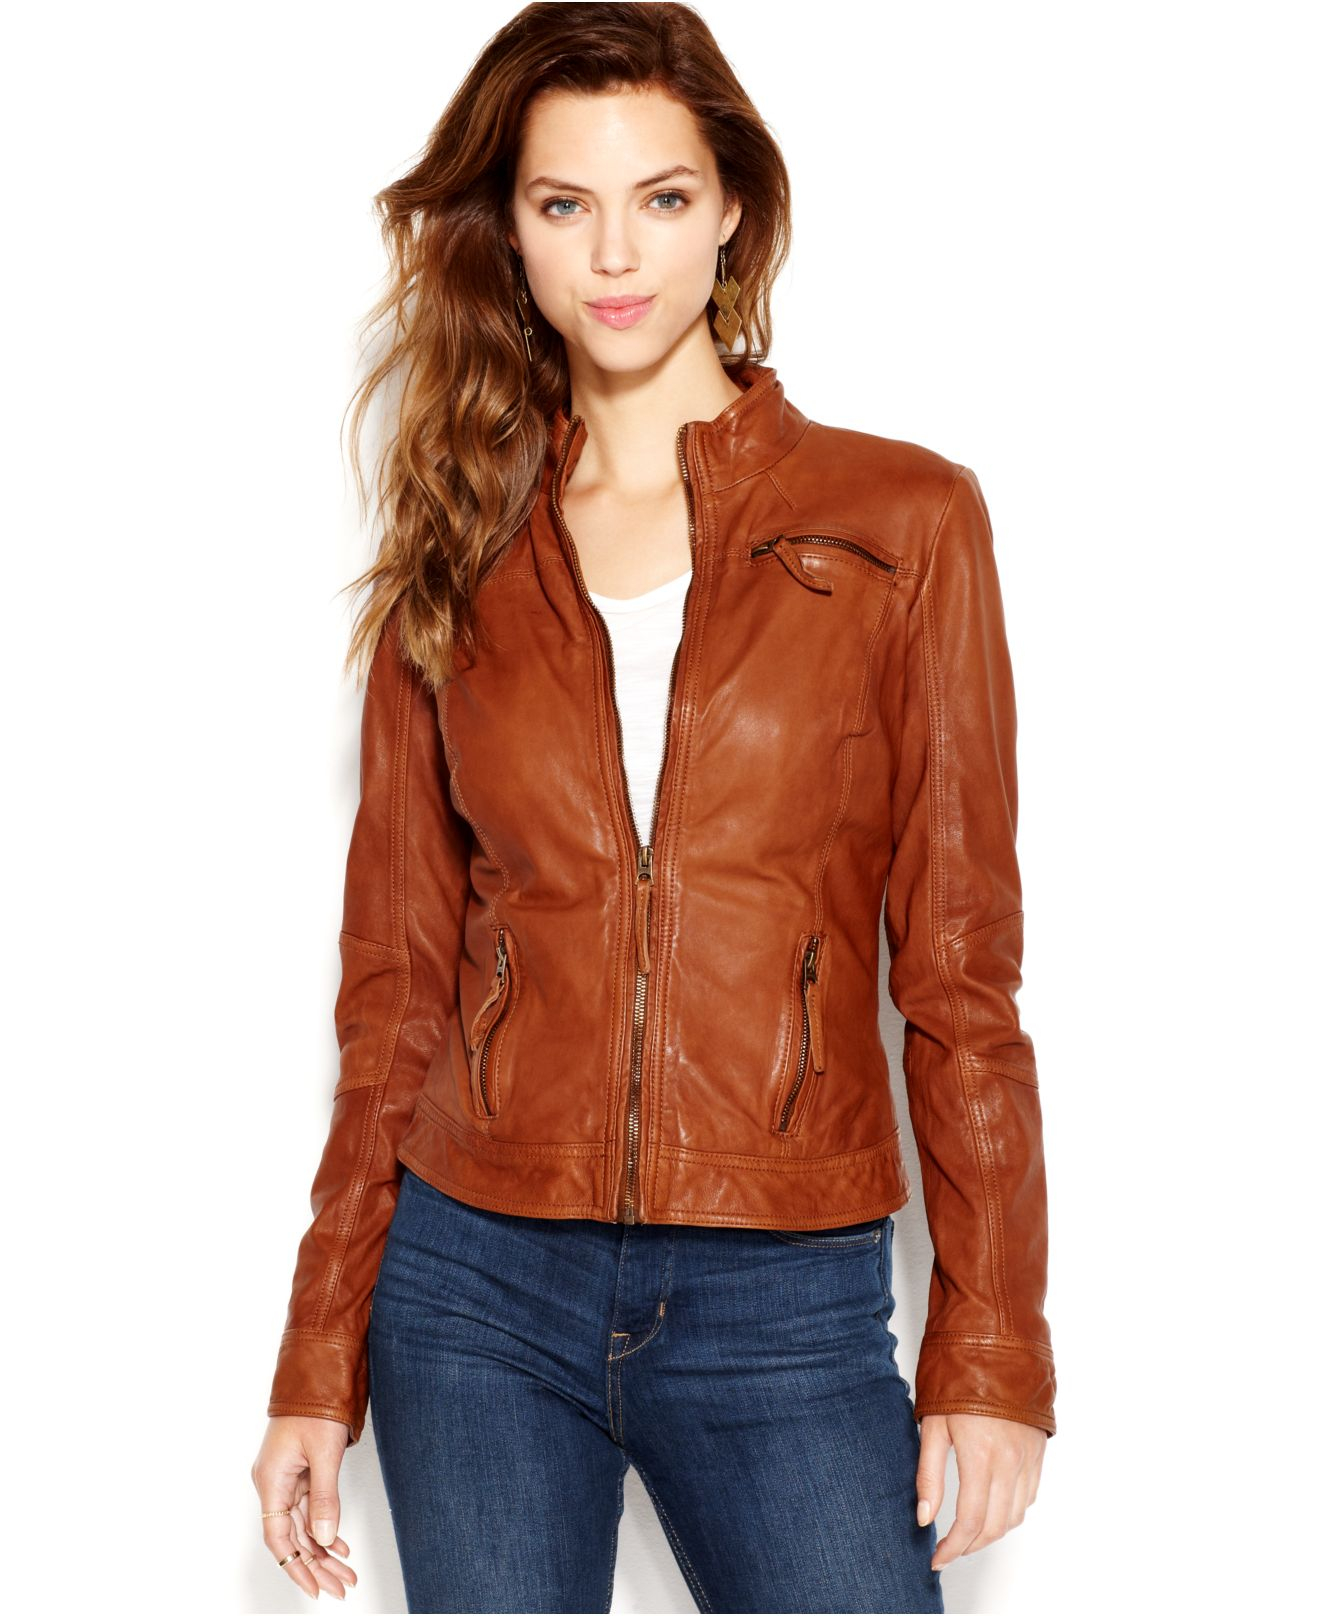 Brown Leather Jacket Womens Clothing - Jacket